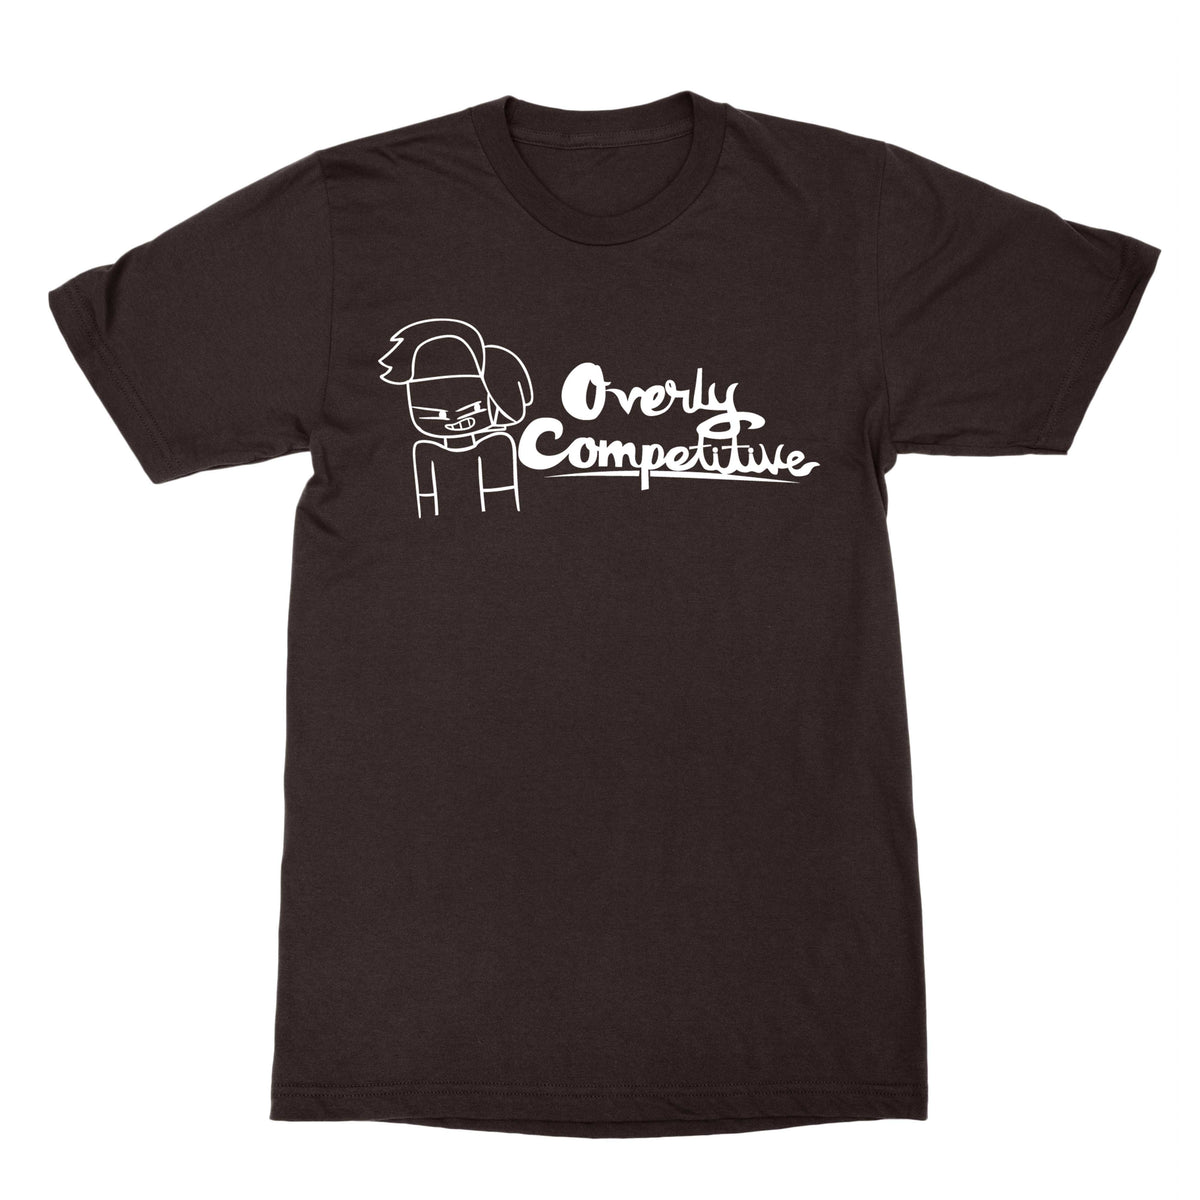 Overly Competitive Unisex T-shirt